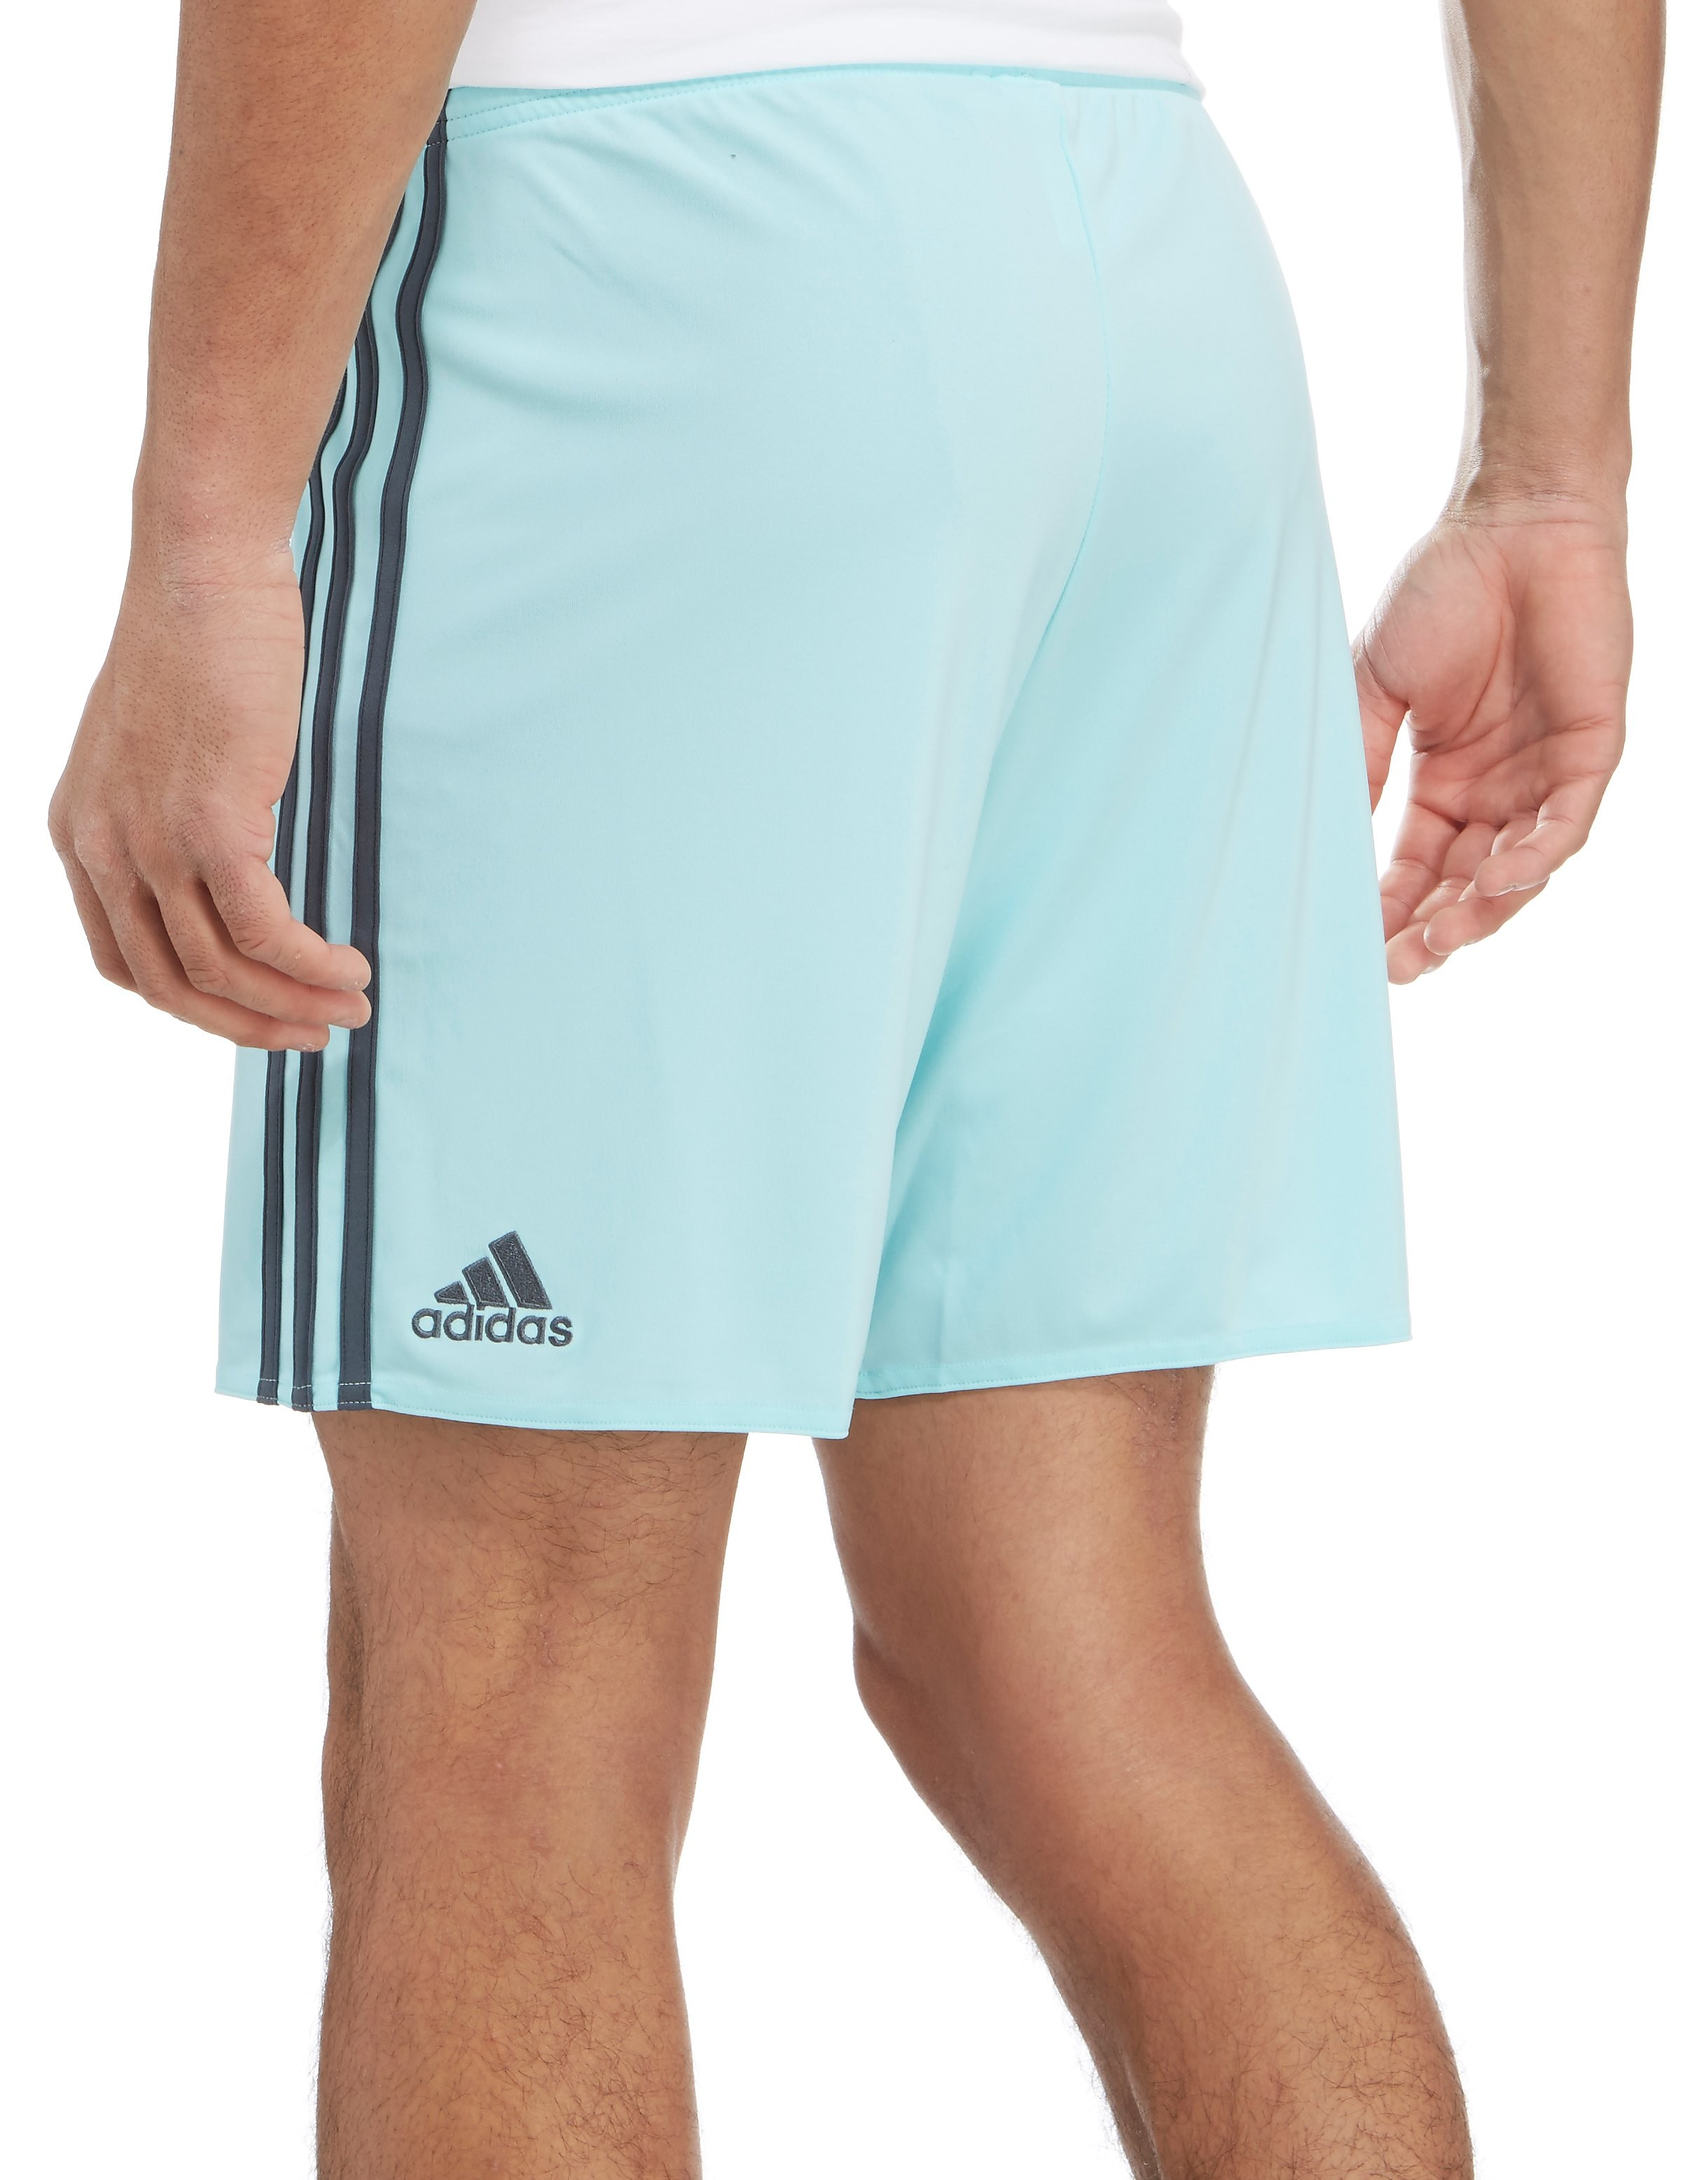 adidas Ajax 2016/17 Away Shorts